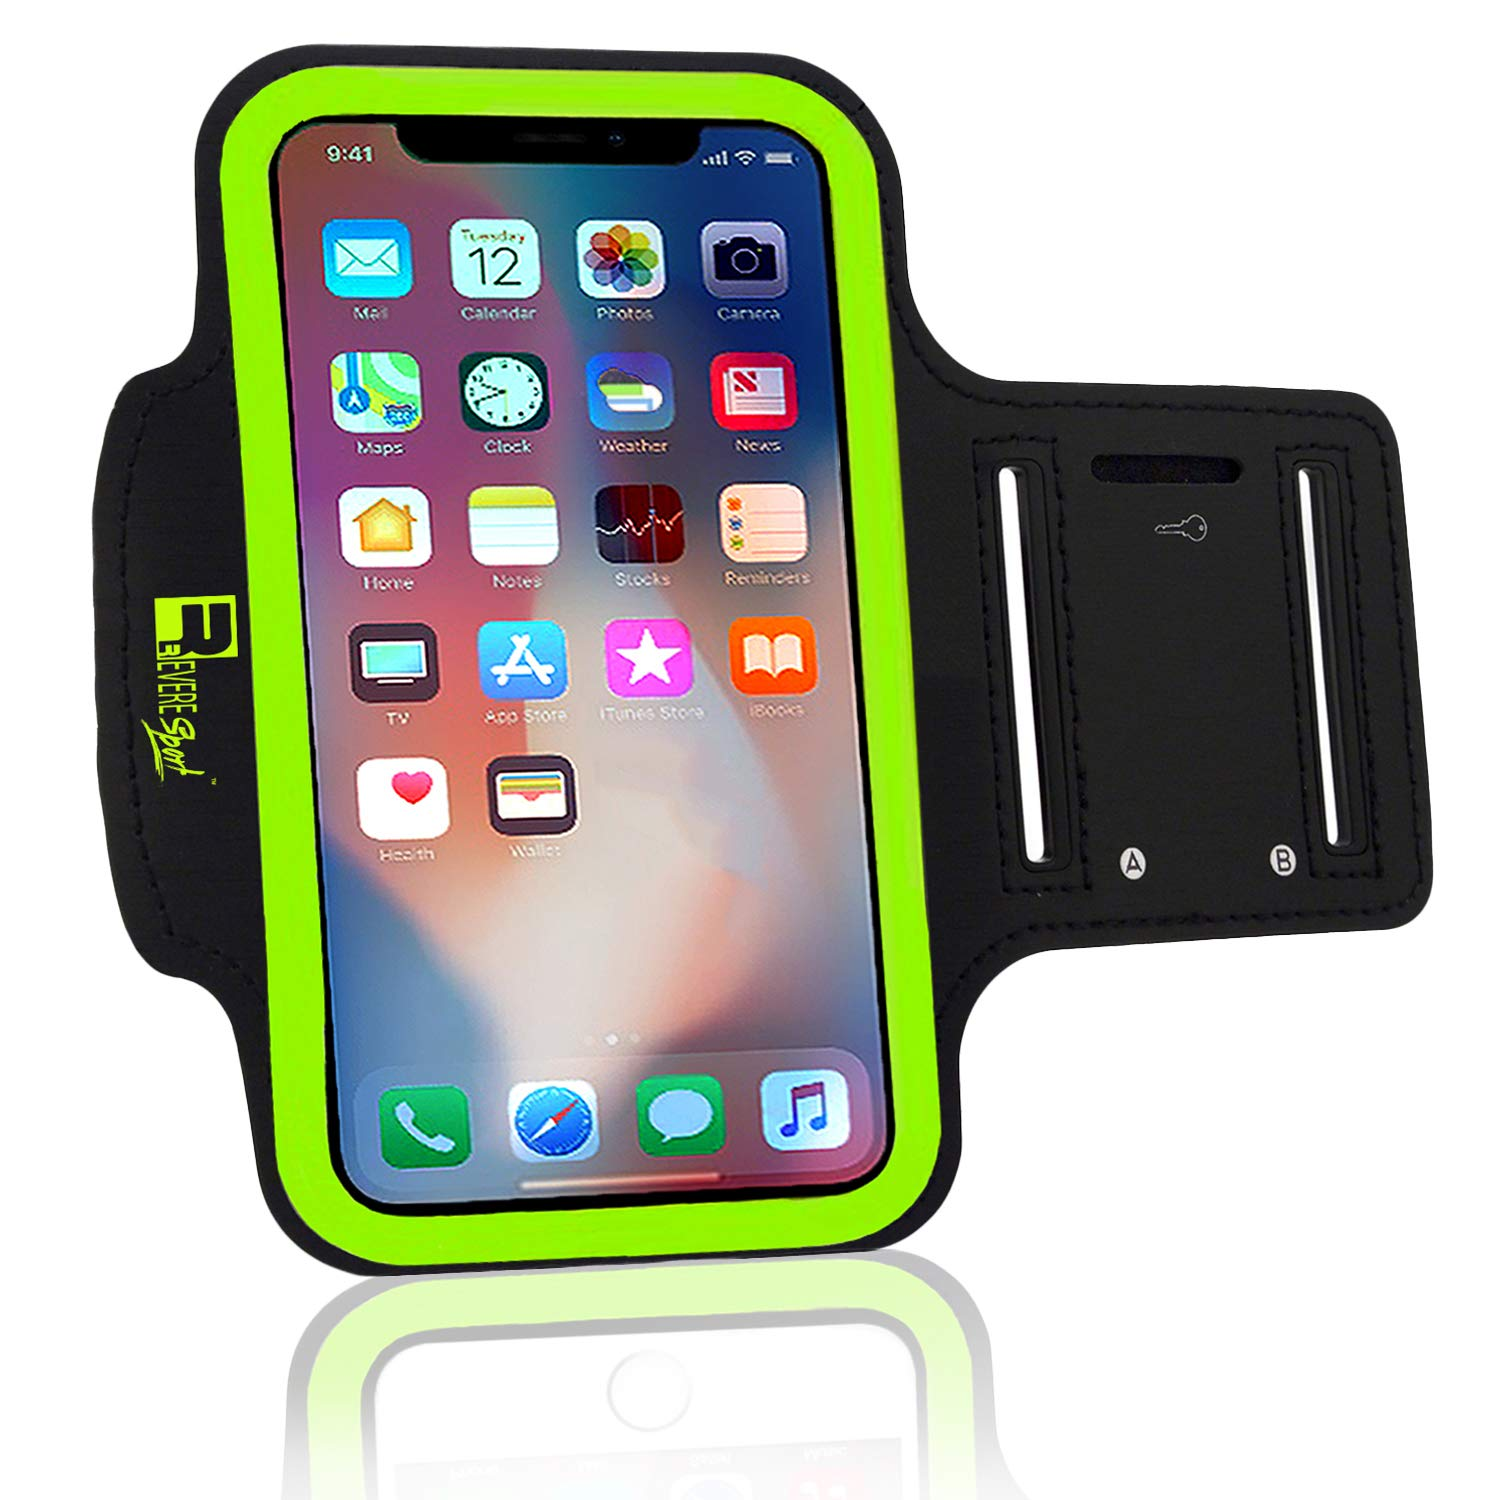 super popular e39d8 14657 iPhone X/XS Running Armband. Arm Phone Holder Case for Runners, Sports, Gym  Workouts & Outdoor Ex...